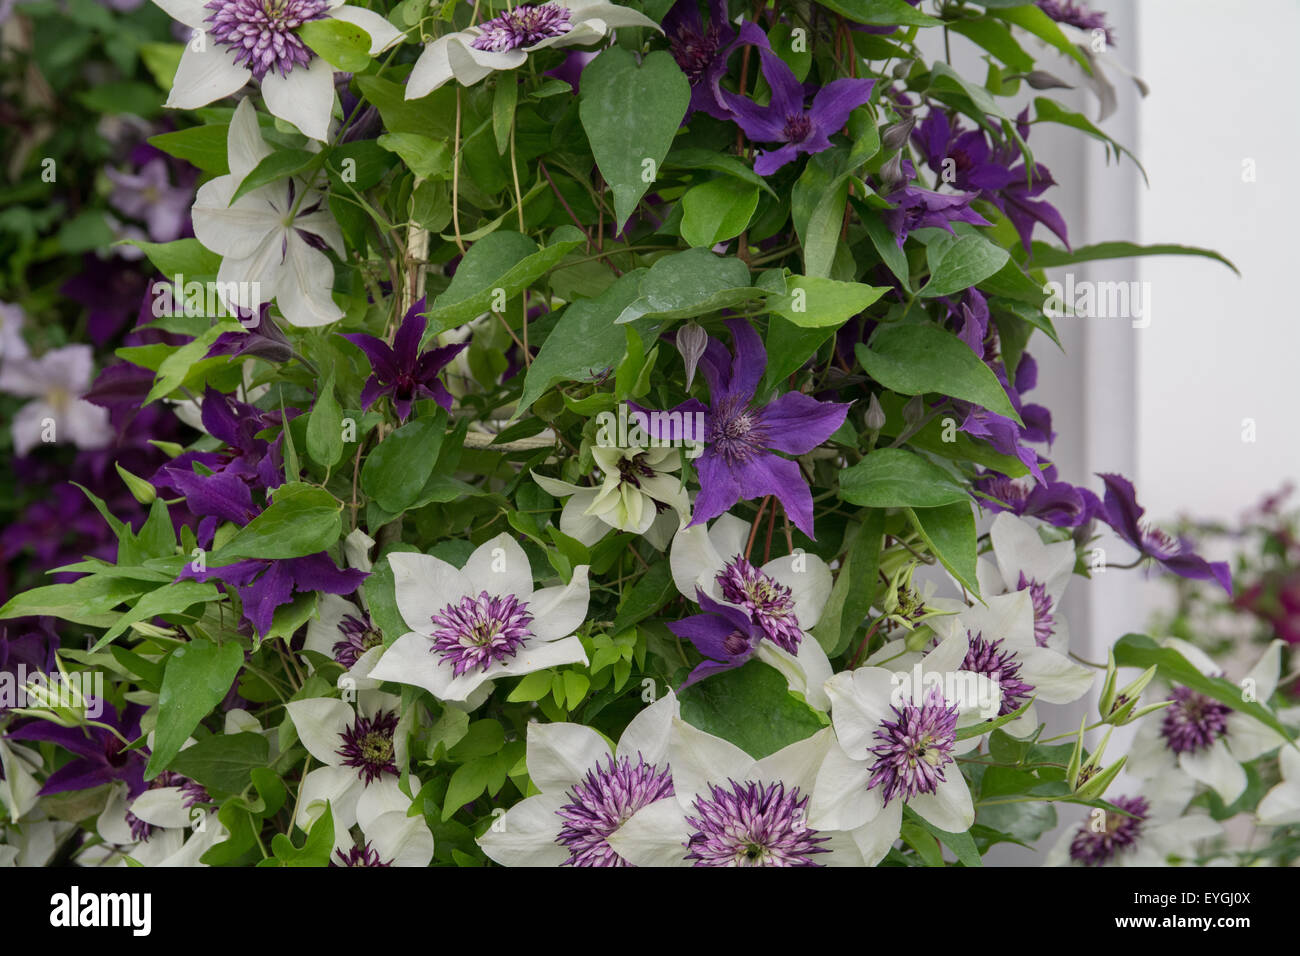 Clematis florida sieboldii ( purple and white) with Clematis Guiding Promise ( Purple ) Stock Photo